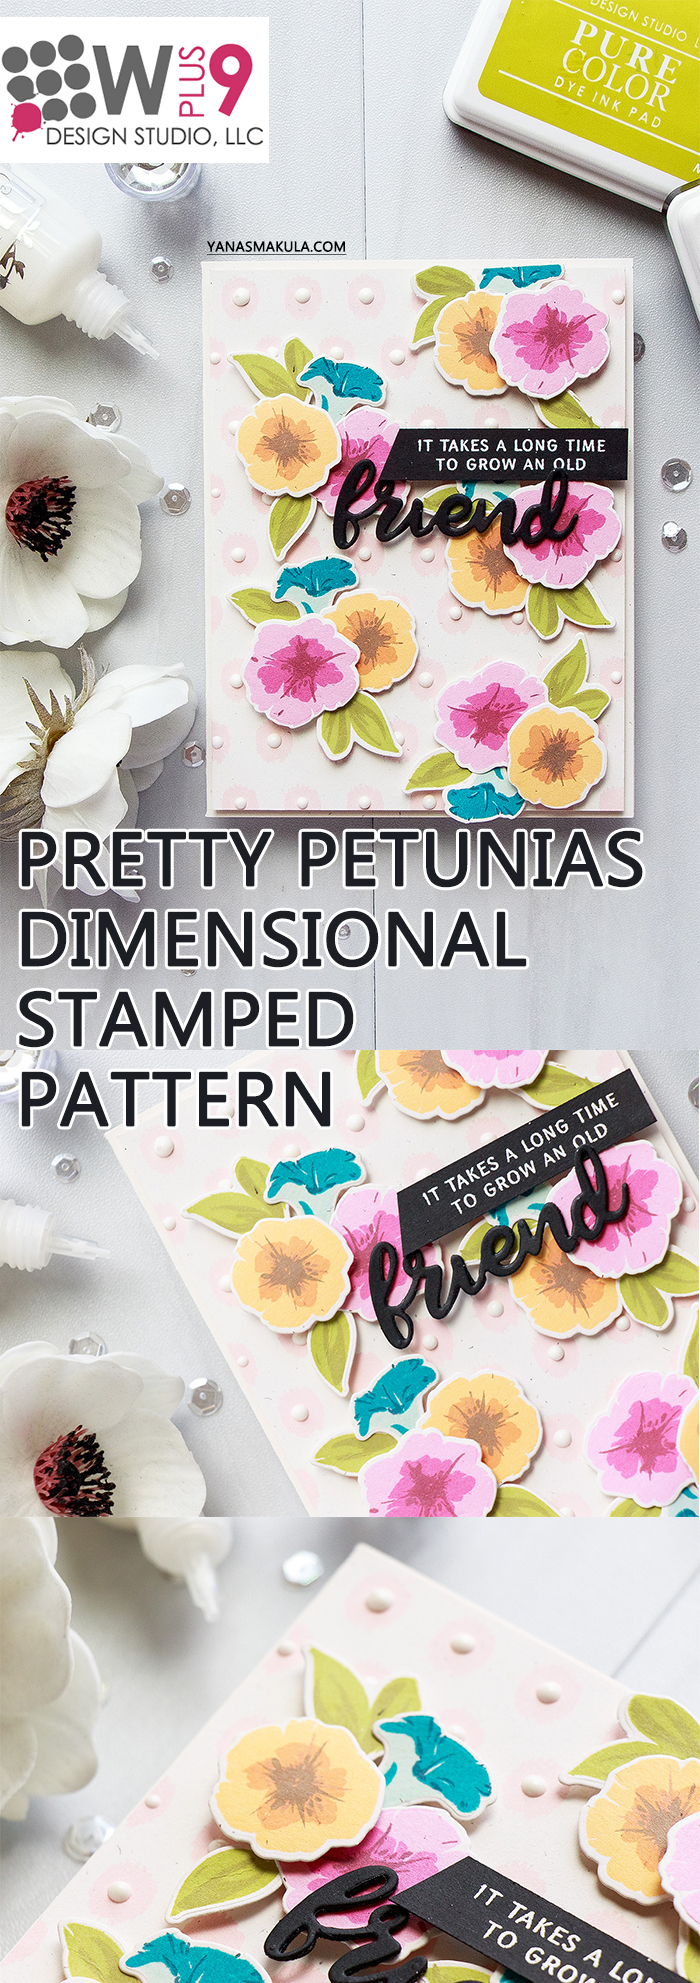 WPlus9 | Stamped Dimensional Petunias Pattern - Friendship Card by Yana Smakula